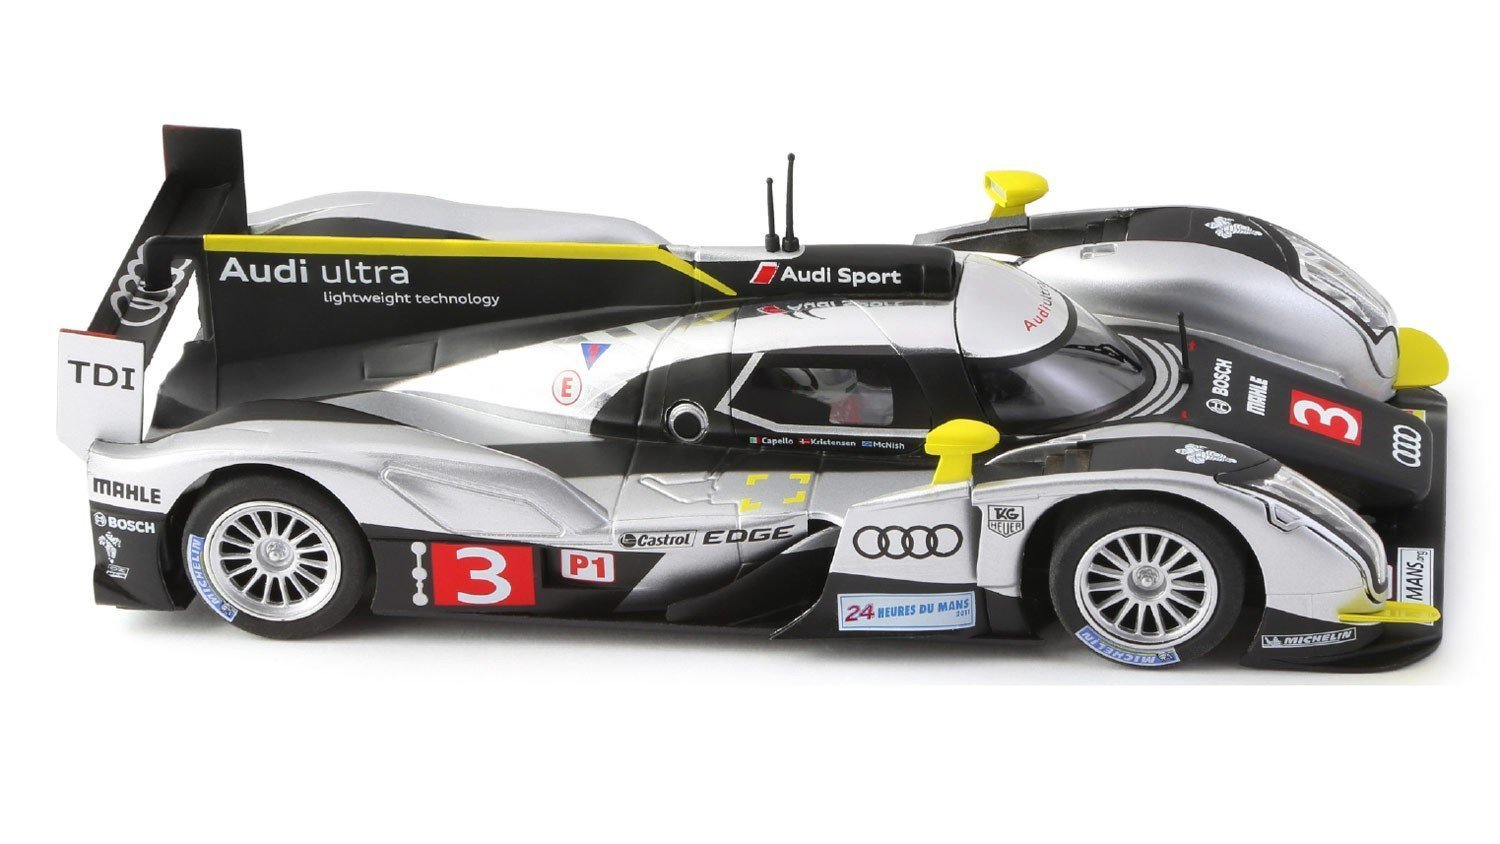 Audi r18 tdi le mans 2011 3 performance slot car by slot for Garage automobile le mans